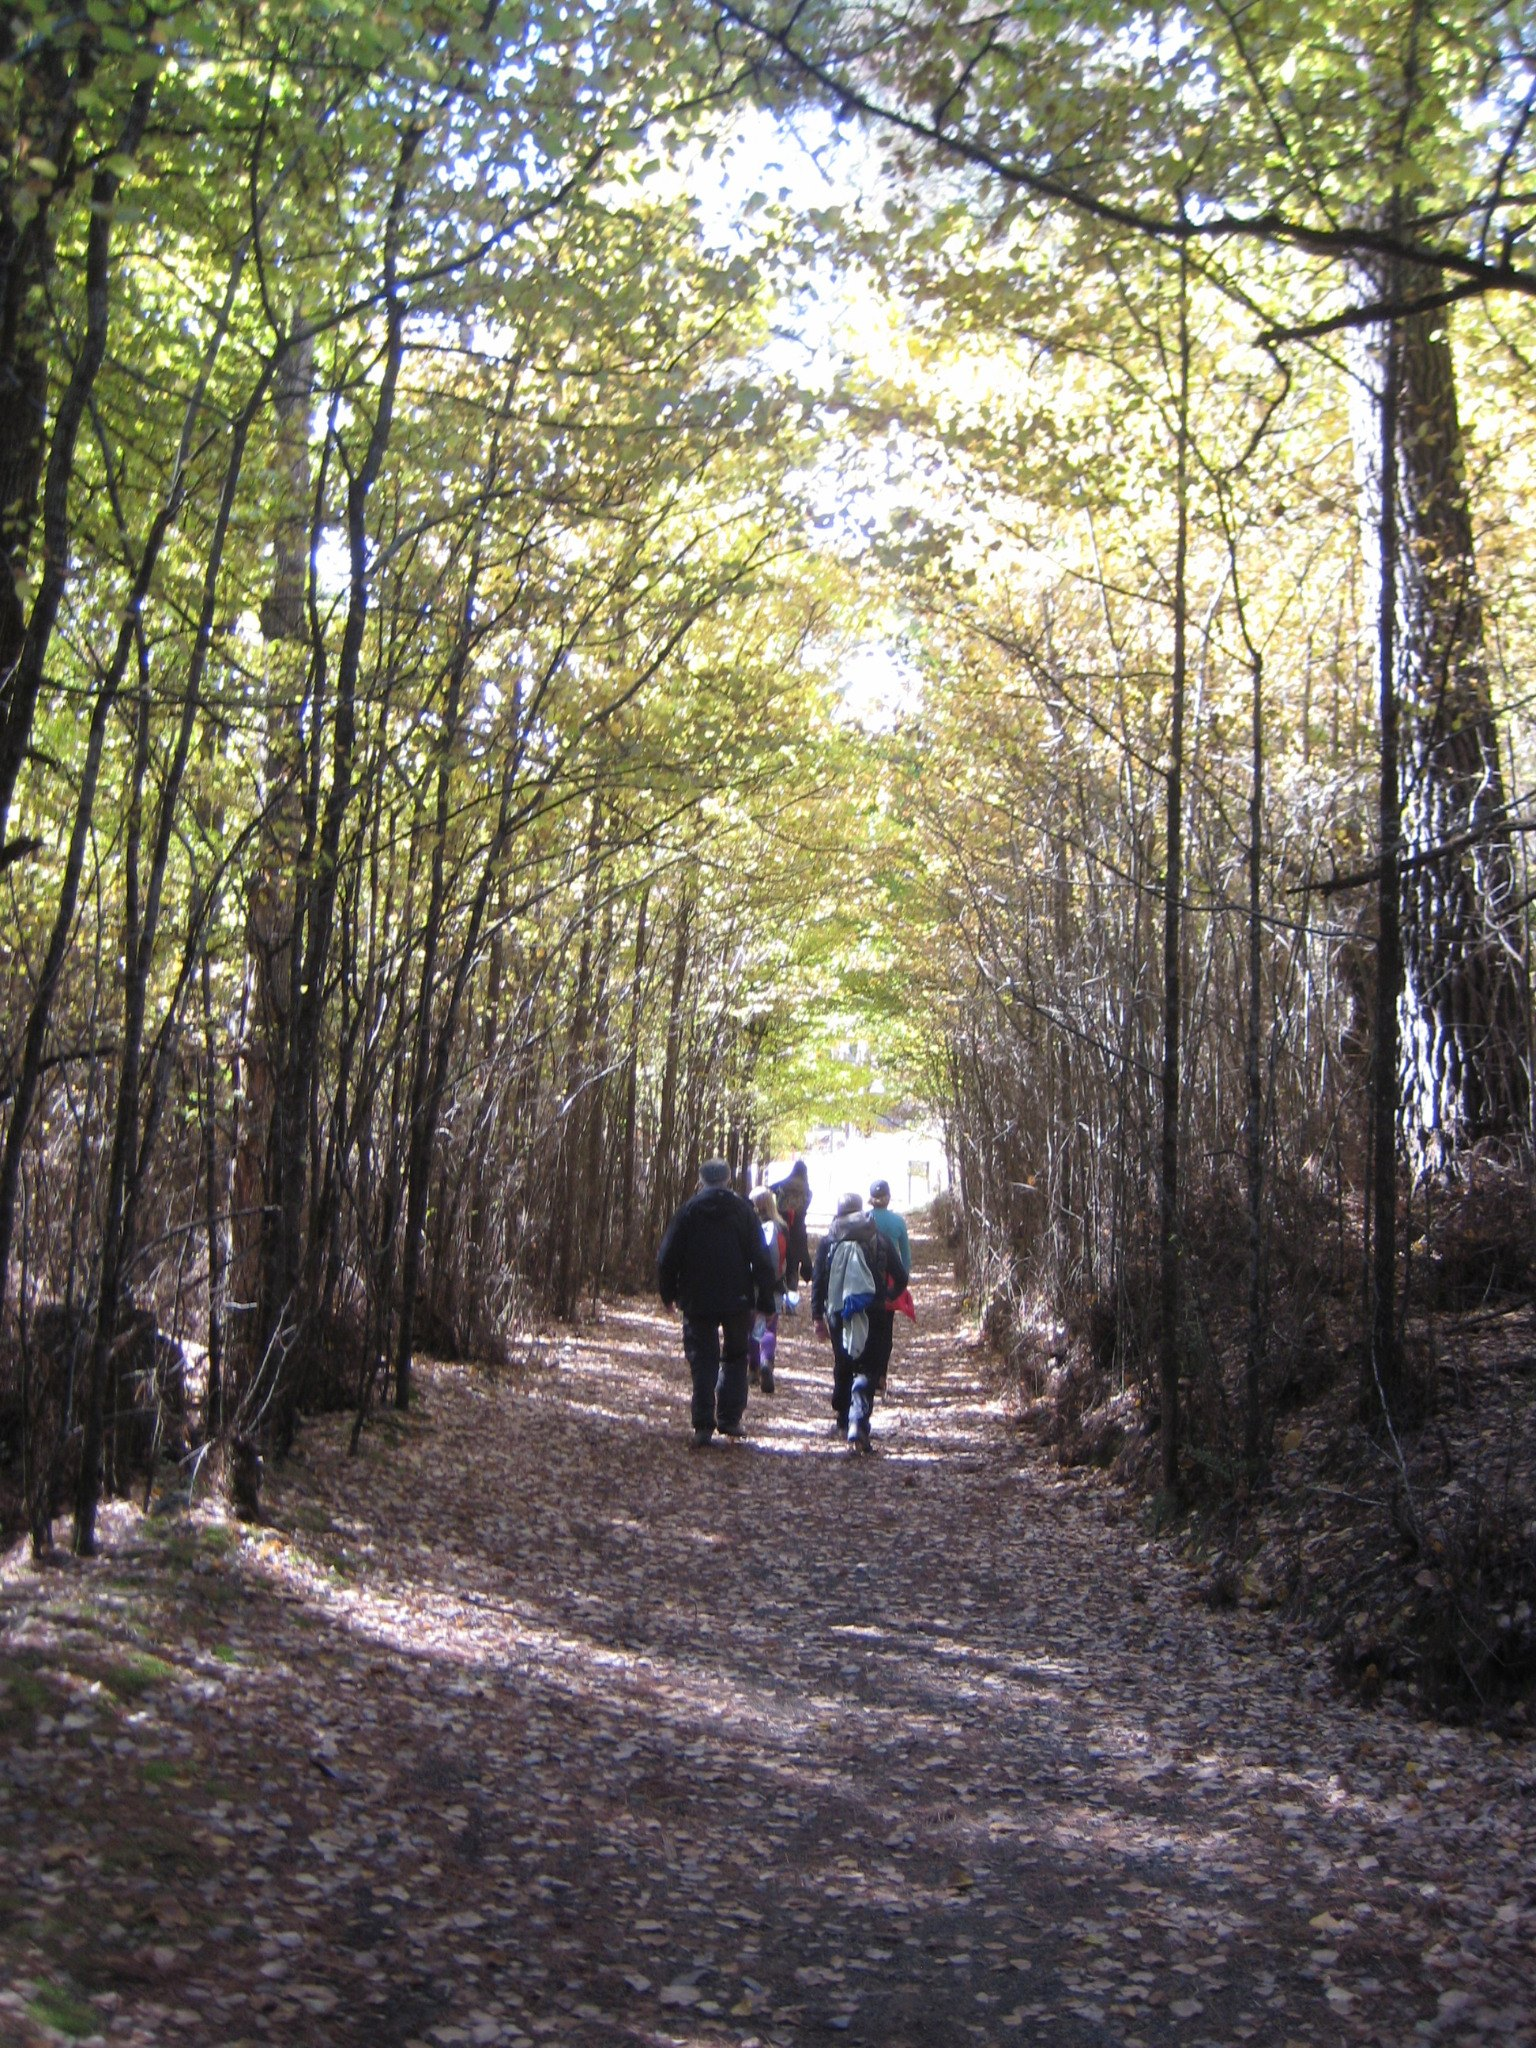 Introductory Hike Training with Women's Fitness Adventures